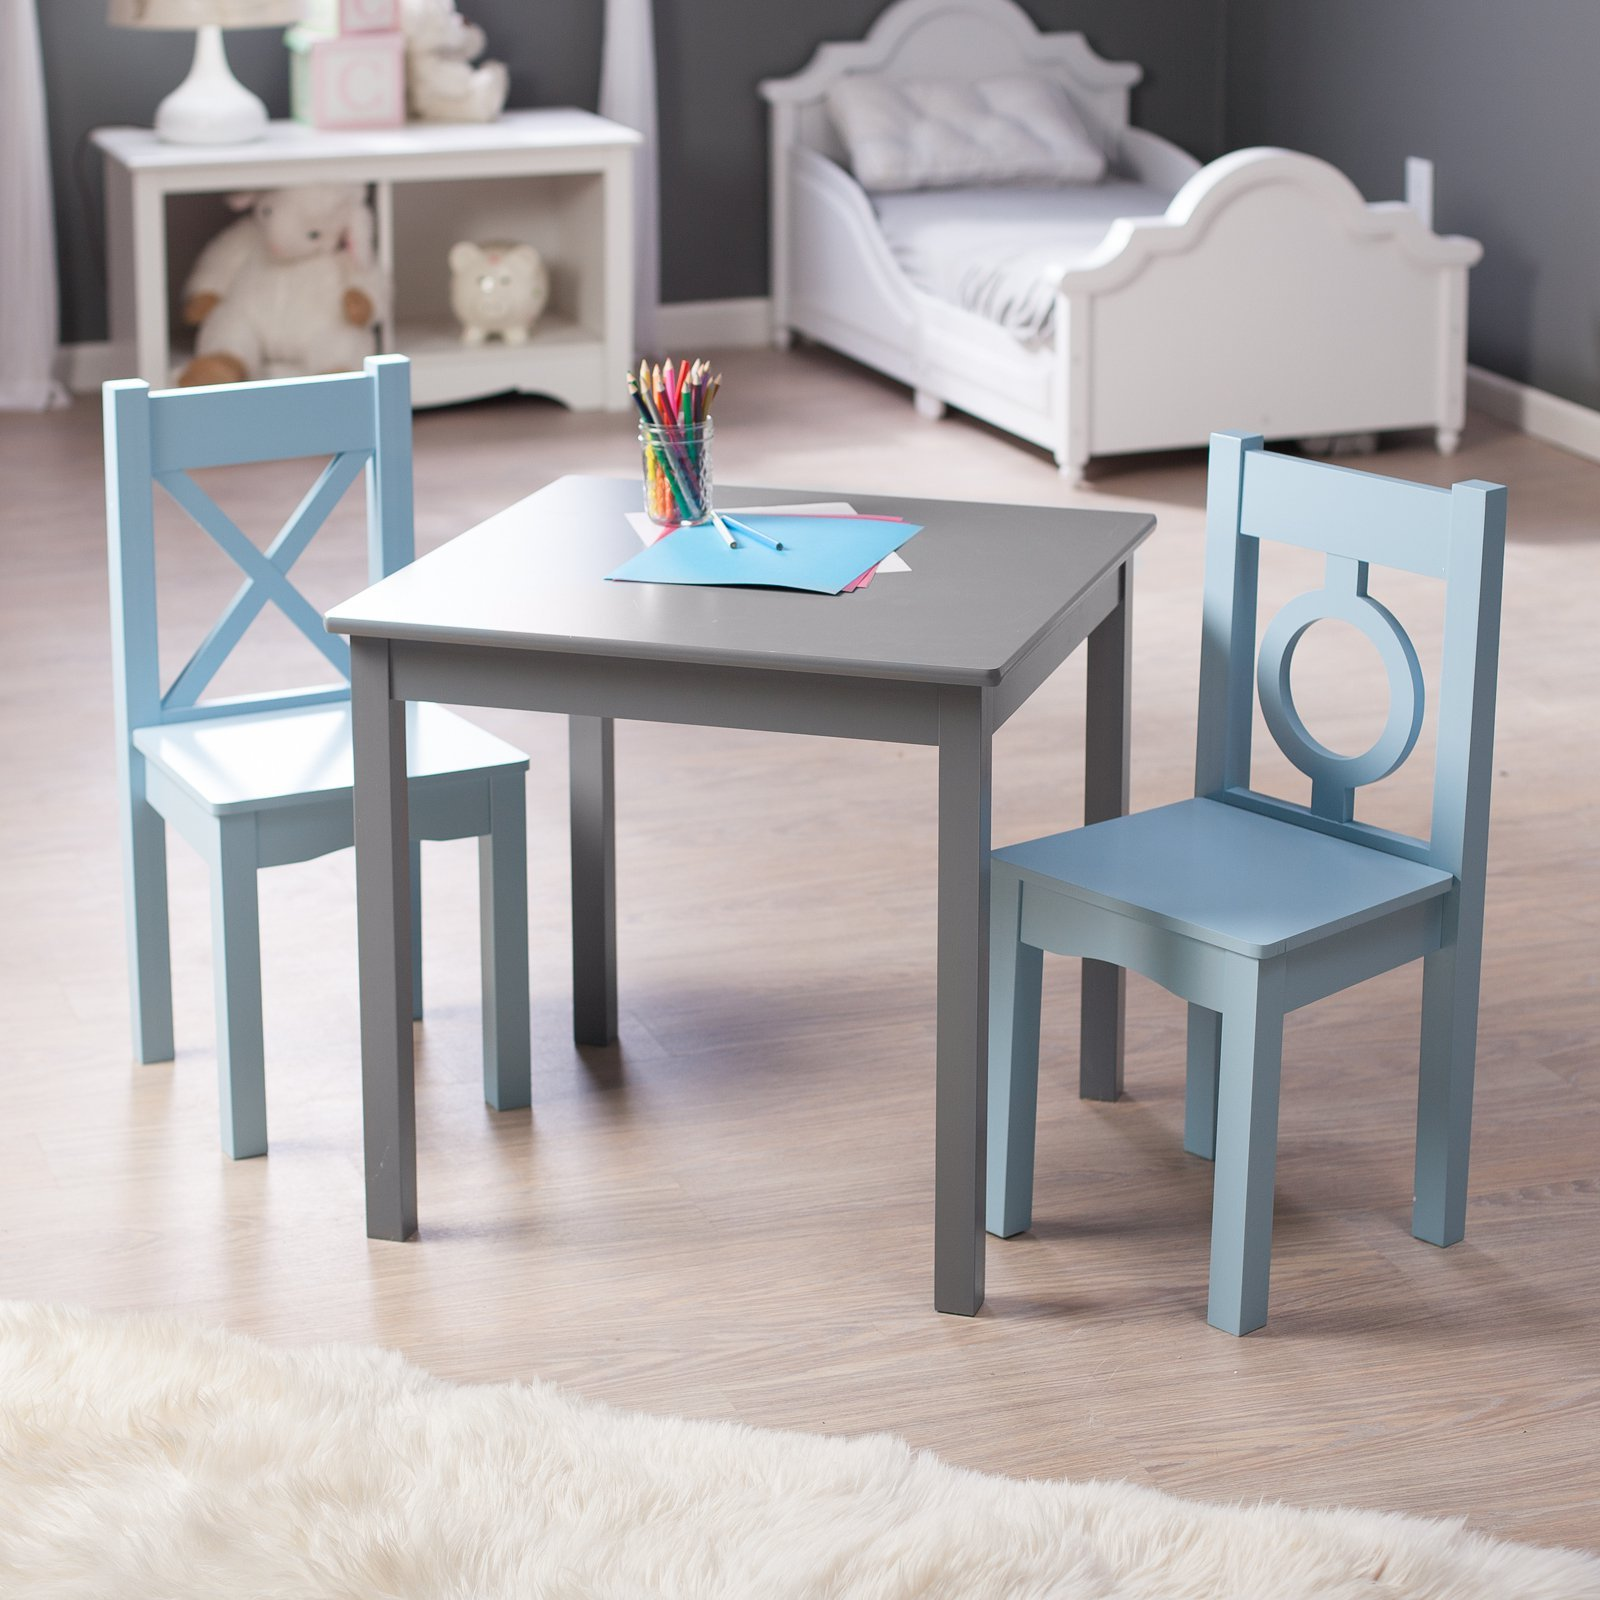 Lipper Hugs and Kisses Engineered Wood Construction for Lasting Durability, Cute, Classic Design, On-trend Gray Finish Paired with Dreamy Blue, Table and 2 Chair Set